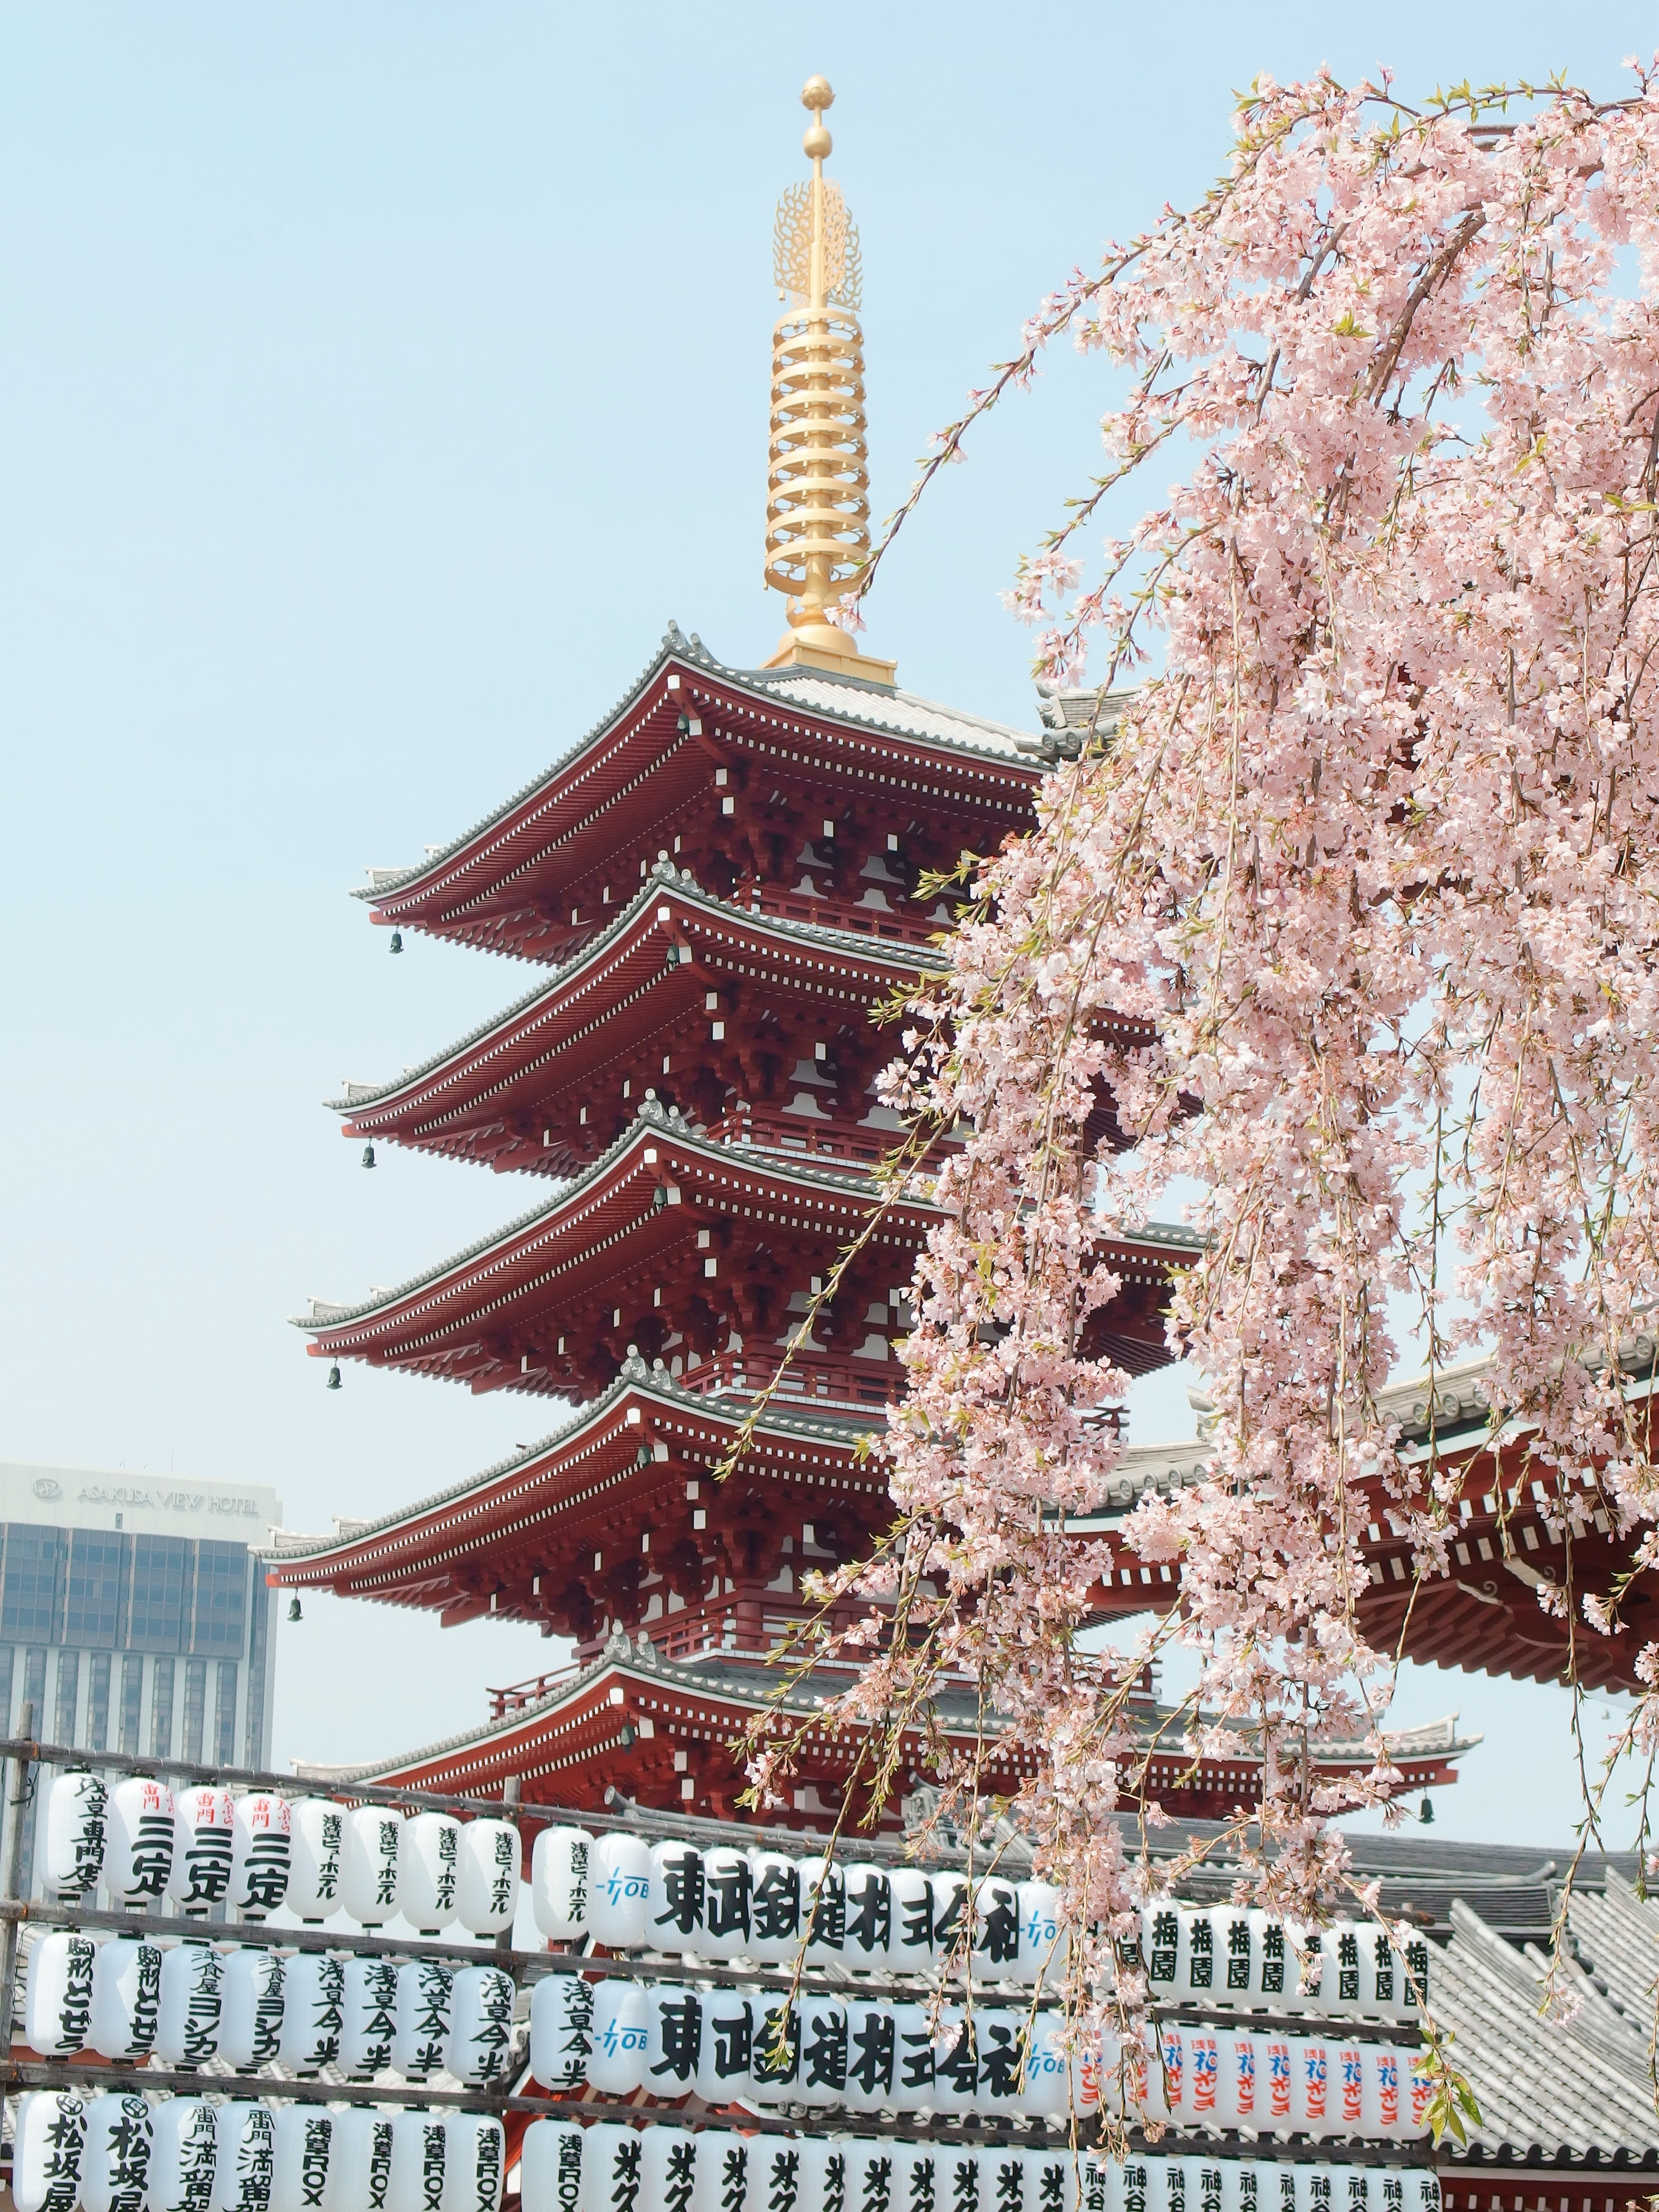 brown and gold pagoda near cherry blossom